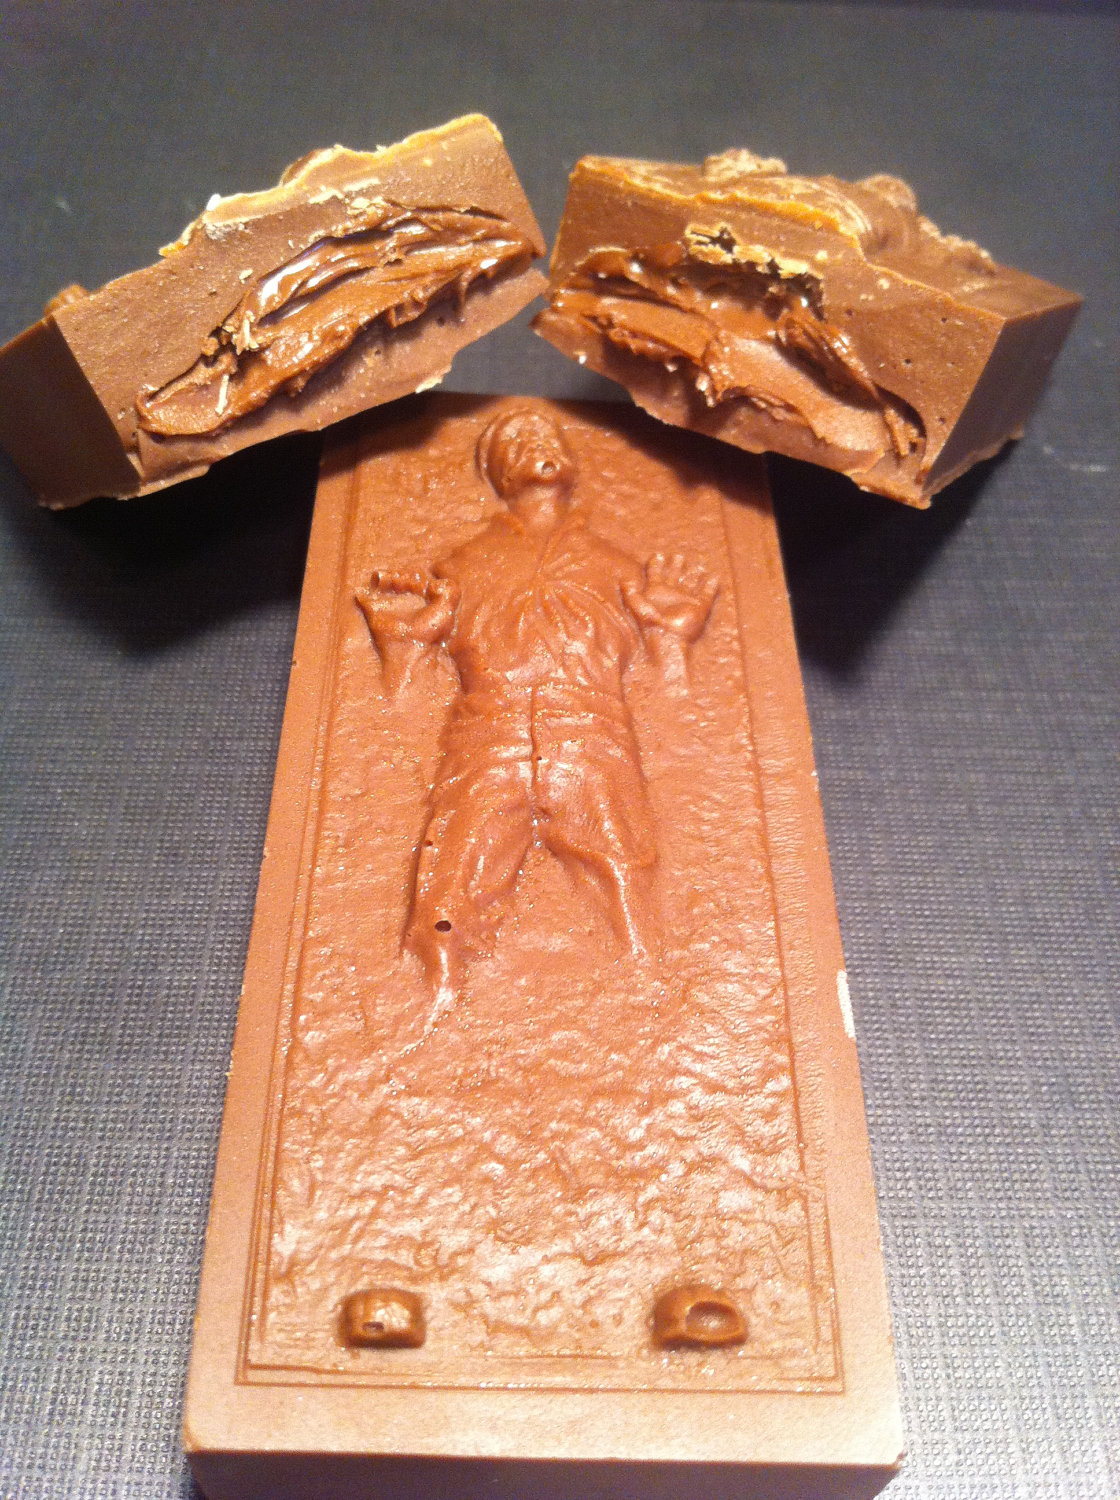 han solo carbonite chocolate